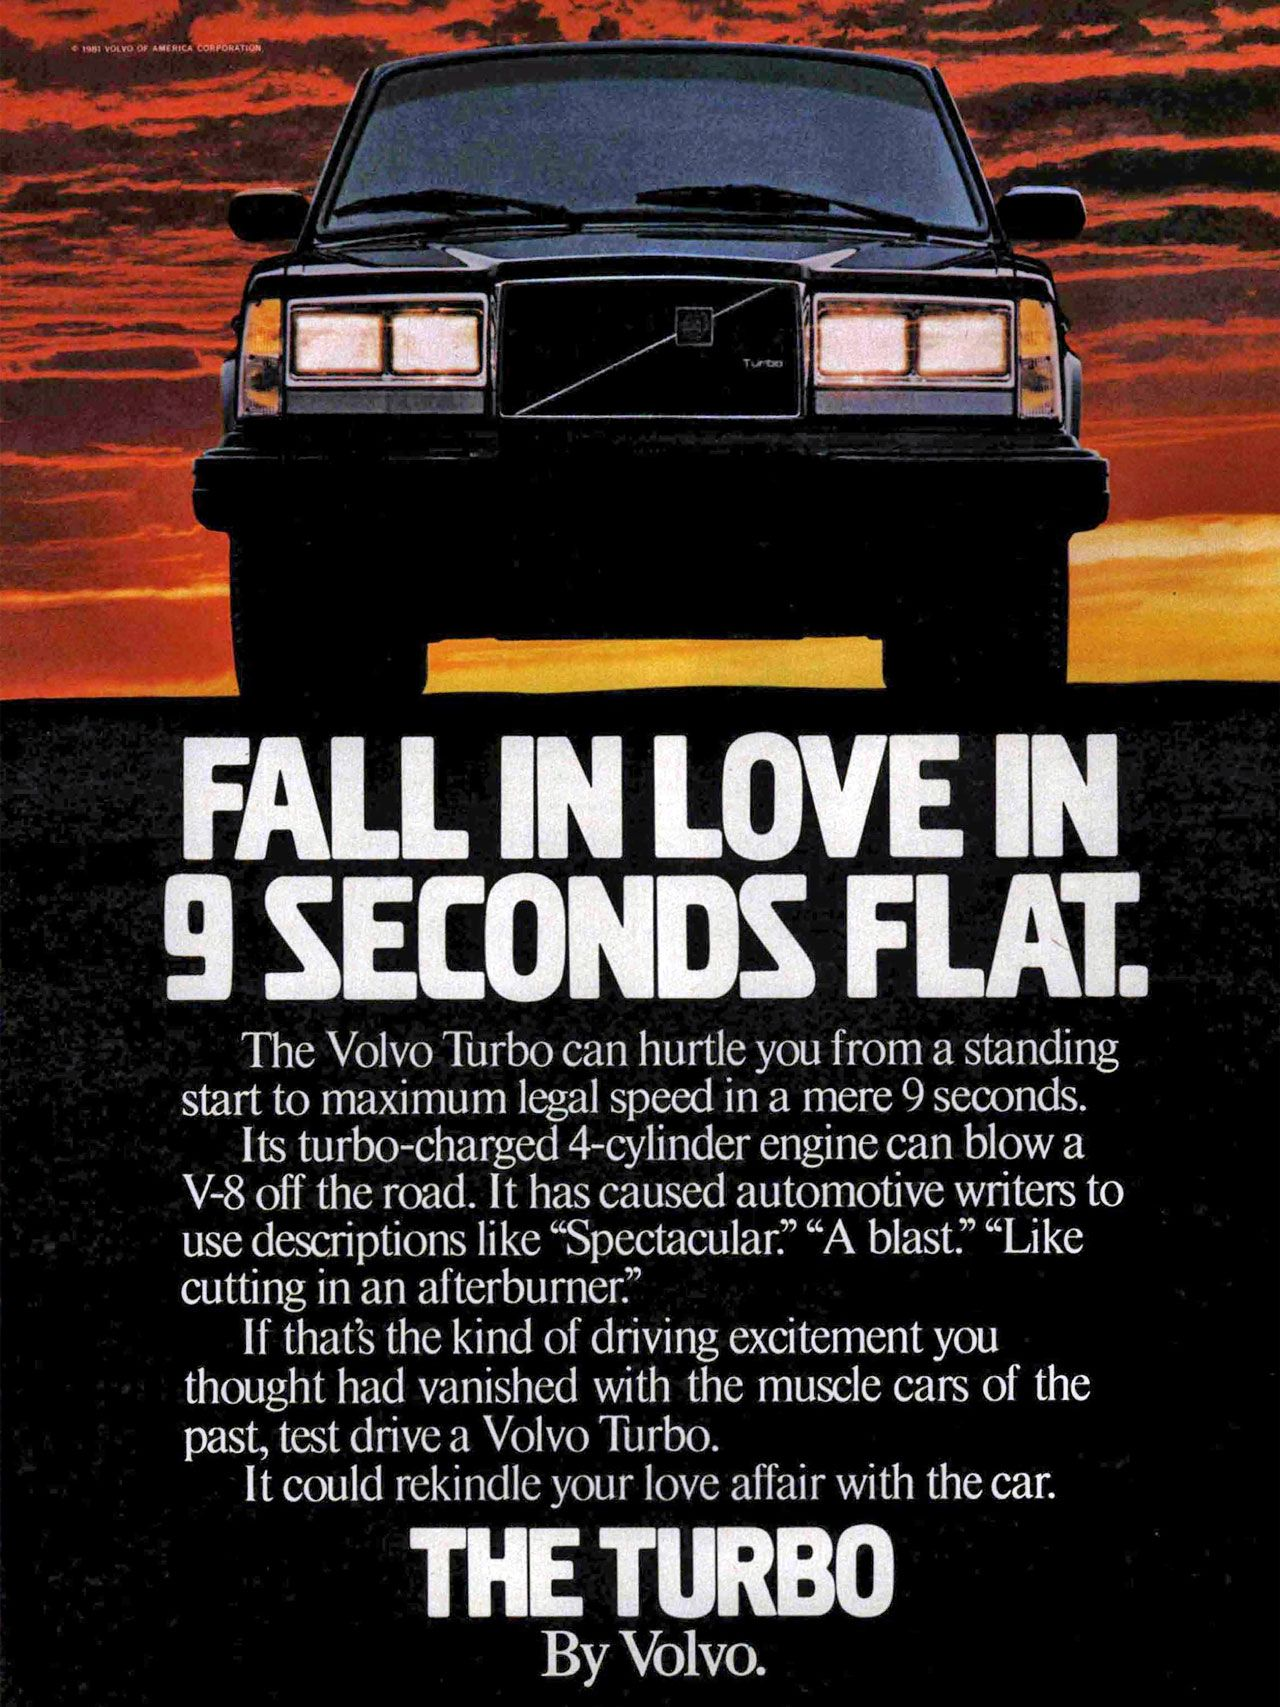 Fall in love in 9 seconds flat. The Turbo by Volvo. The Volvo Turbo can hurtle you from a standing start to maximum legal speed in a mere 9 seconds. Its turbo-charged 4-cylinder engine can blow a V-8 off the road. It has caused automotive writers to use descriptions like 'Spectacular.' 'A blast.' 'Like cutting in an afterburner?' If that's the kind of driving excitement you thought had vanished with the muscle cars of the past, test drive a Volvo Turbo. It could rekindle your love affair with the car. THE TURBO By Volvo.